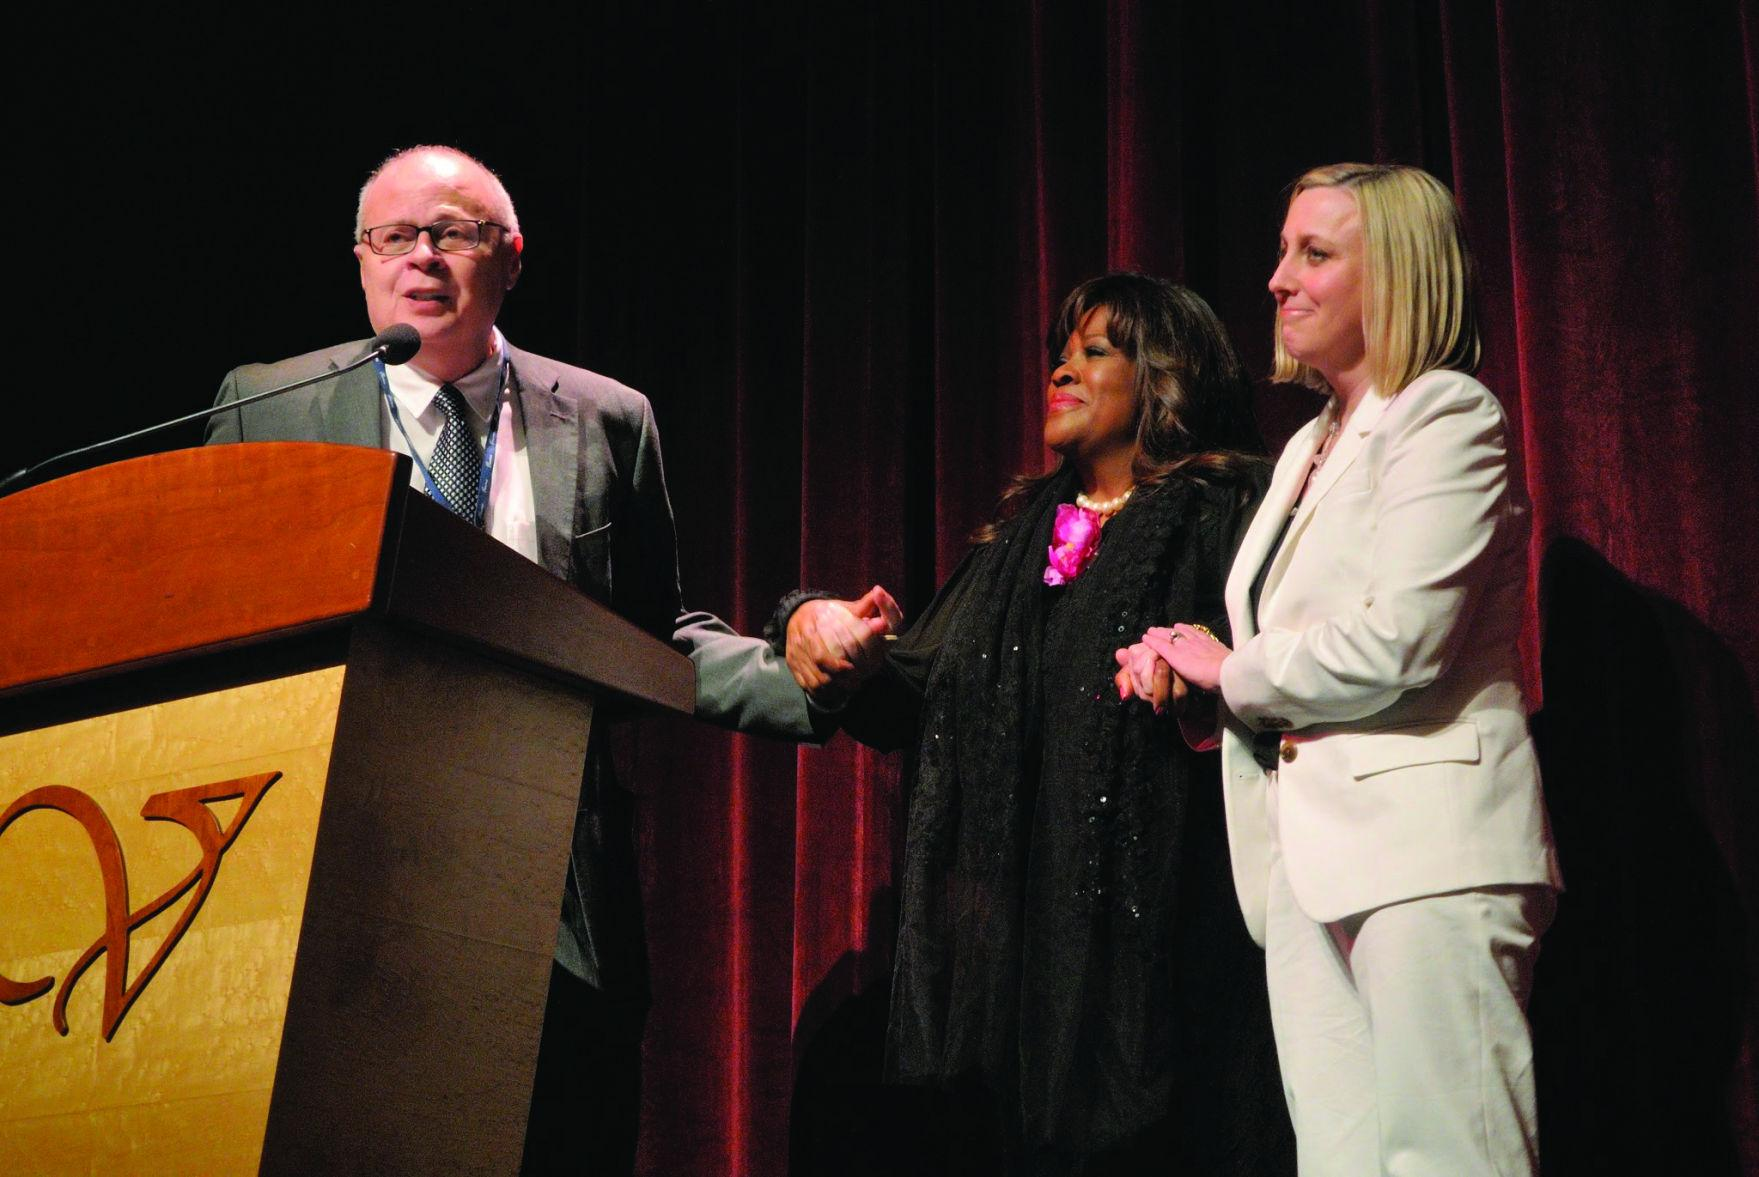 Festival Director Nate Kohn, Executive Producer and Host Chas Ebert and Associate Festival Director Mary Susan Britt welcome viewers to the 16th Annual Roger Ebert's Film Festival on opening night.